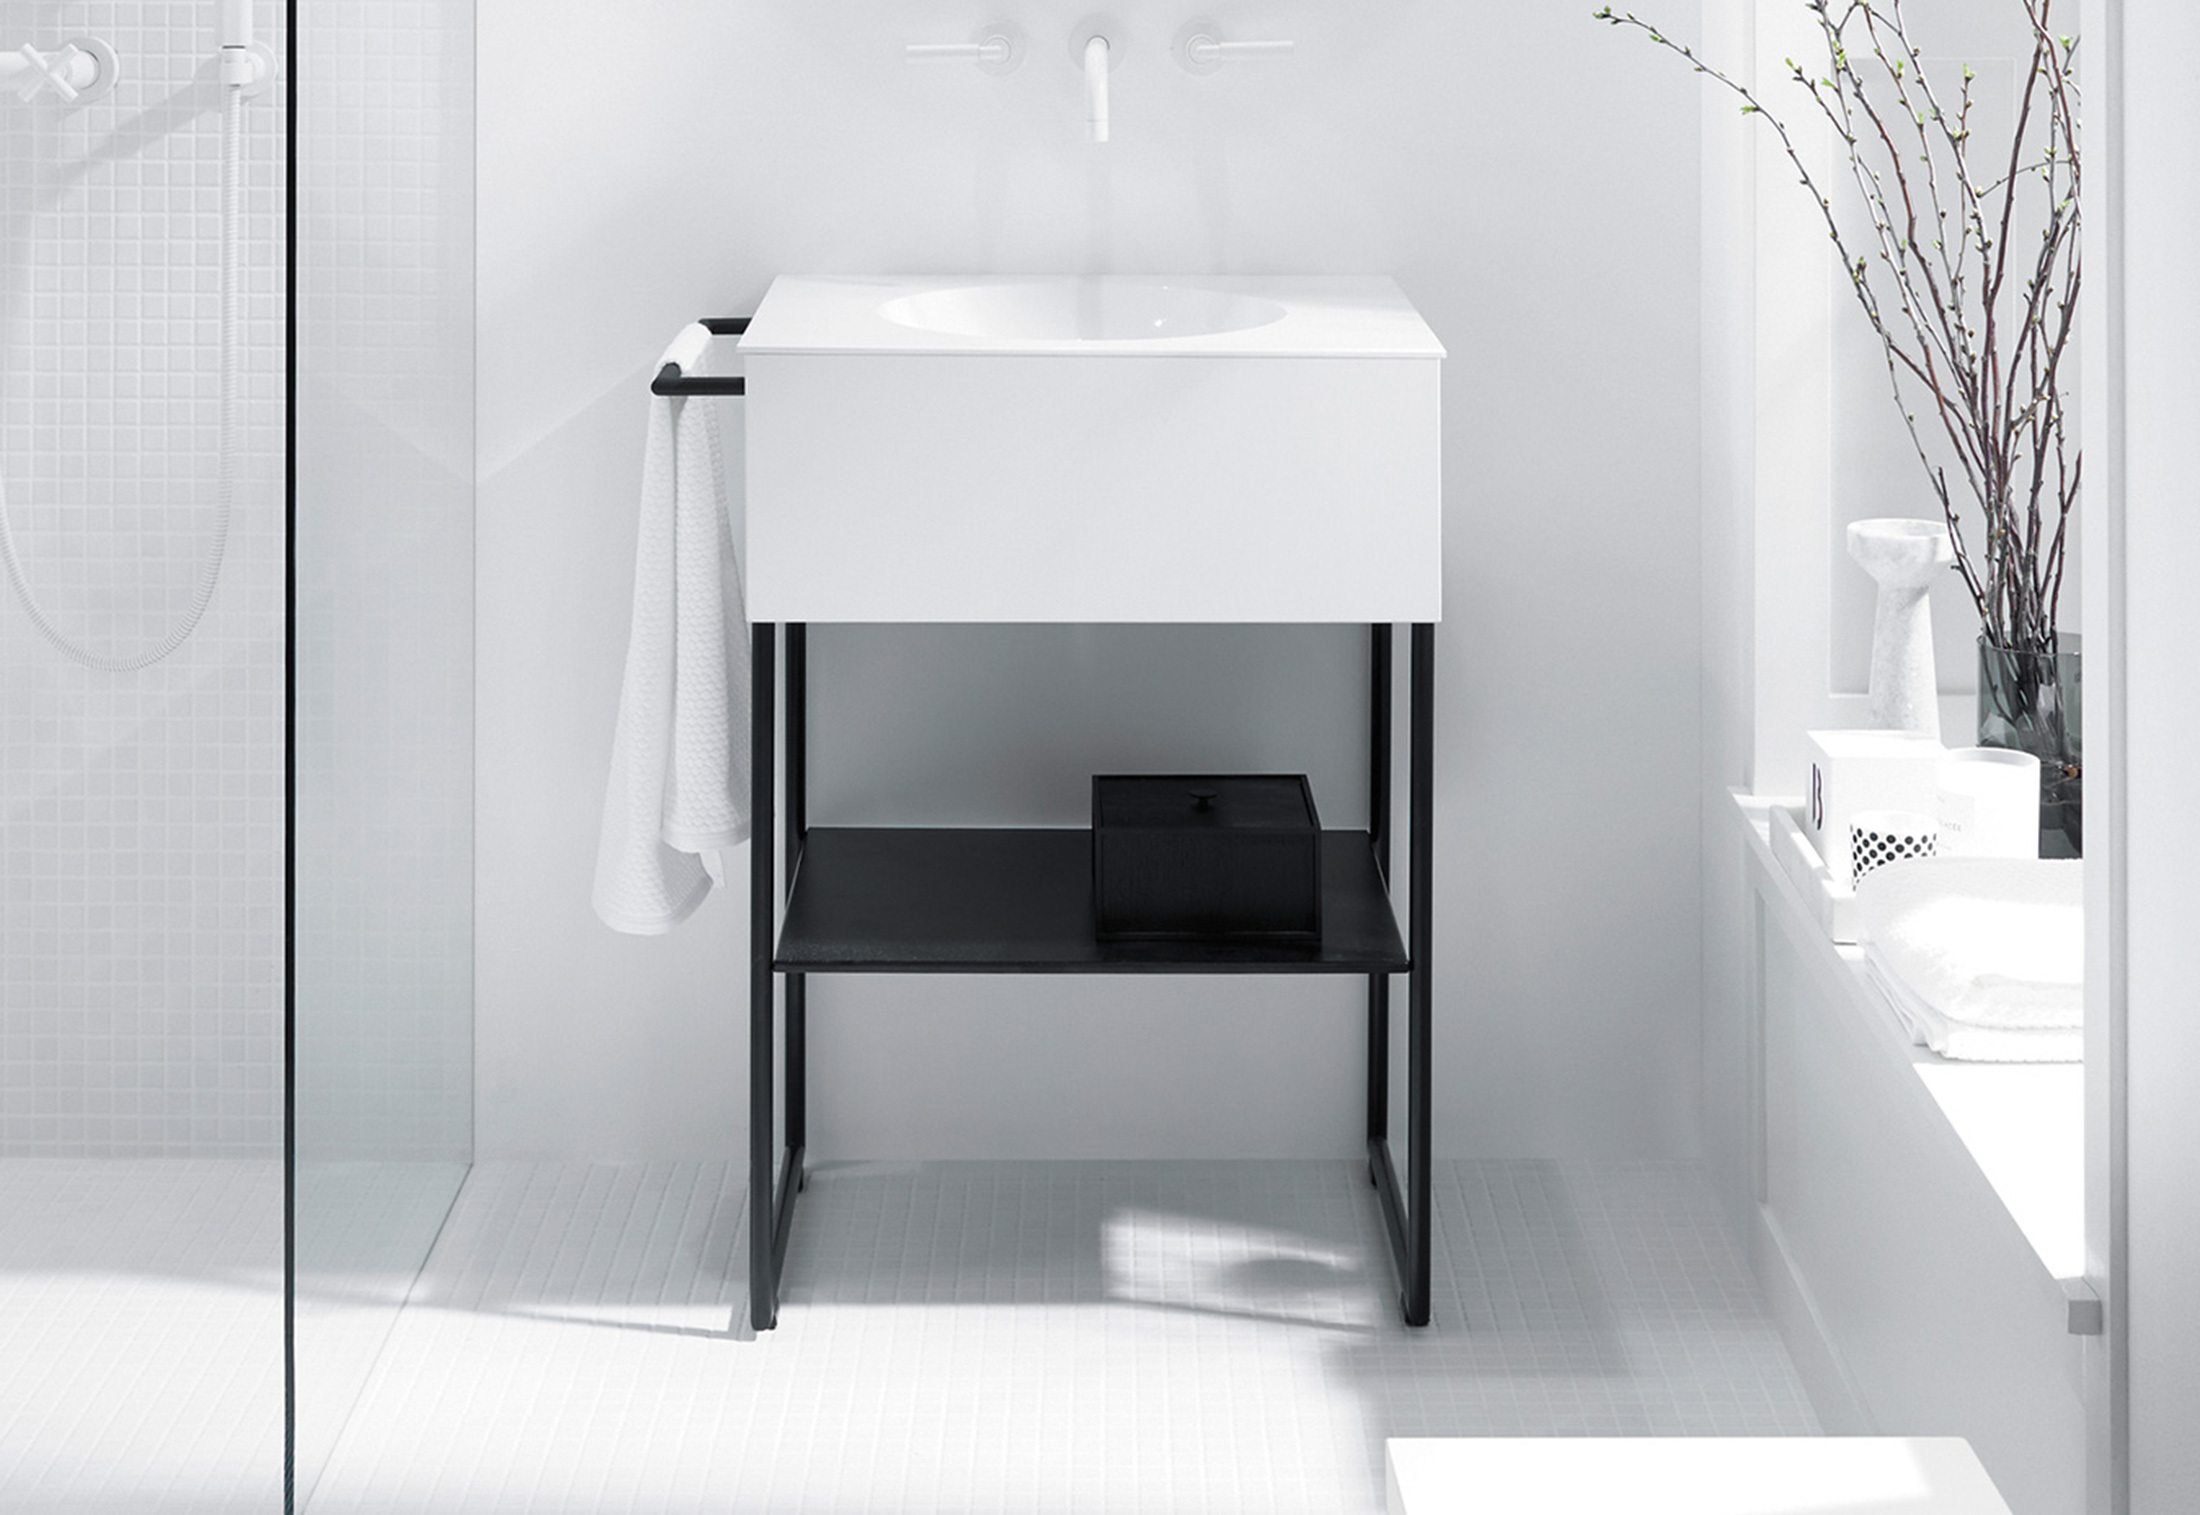 Coco mineral cast washbasin incl vanity unit and metal legs